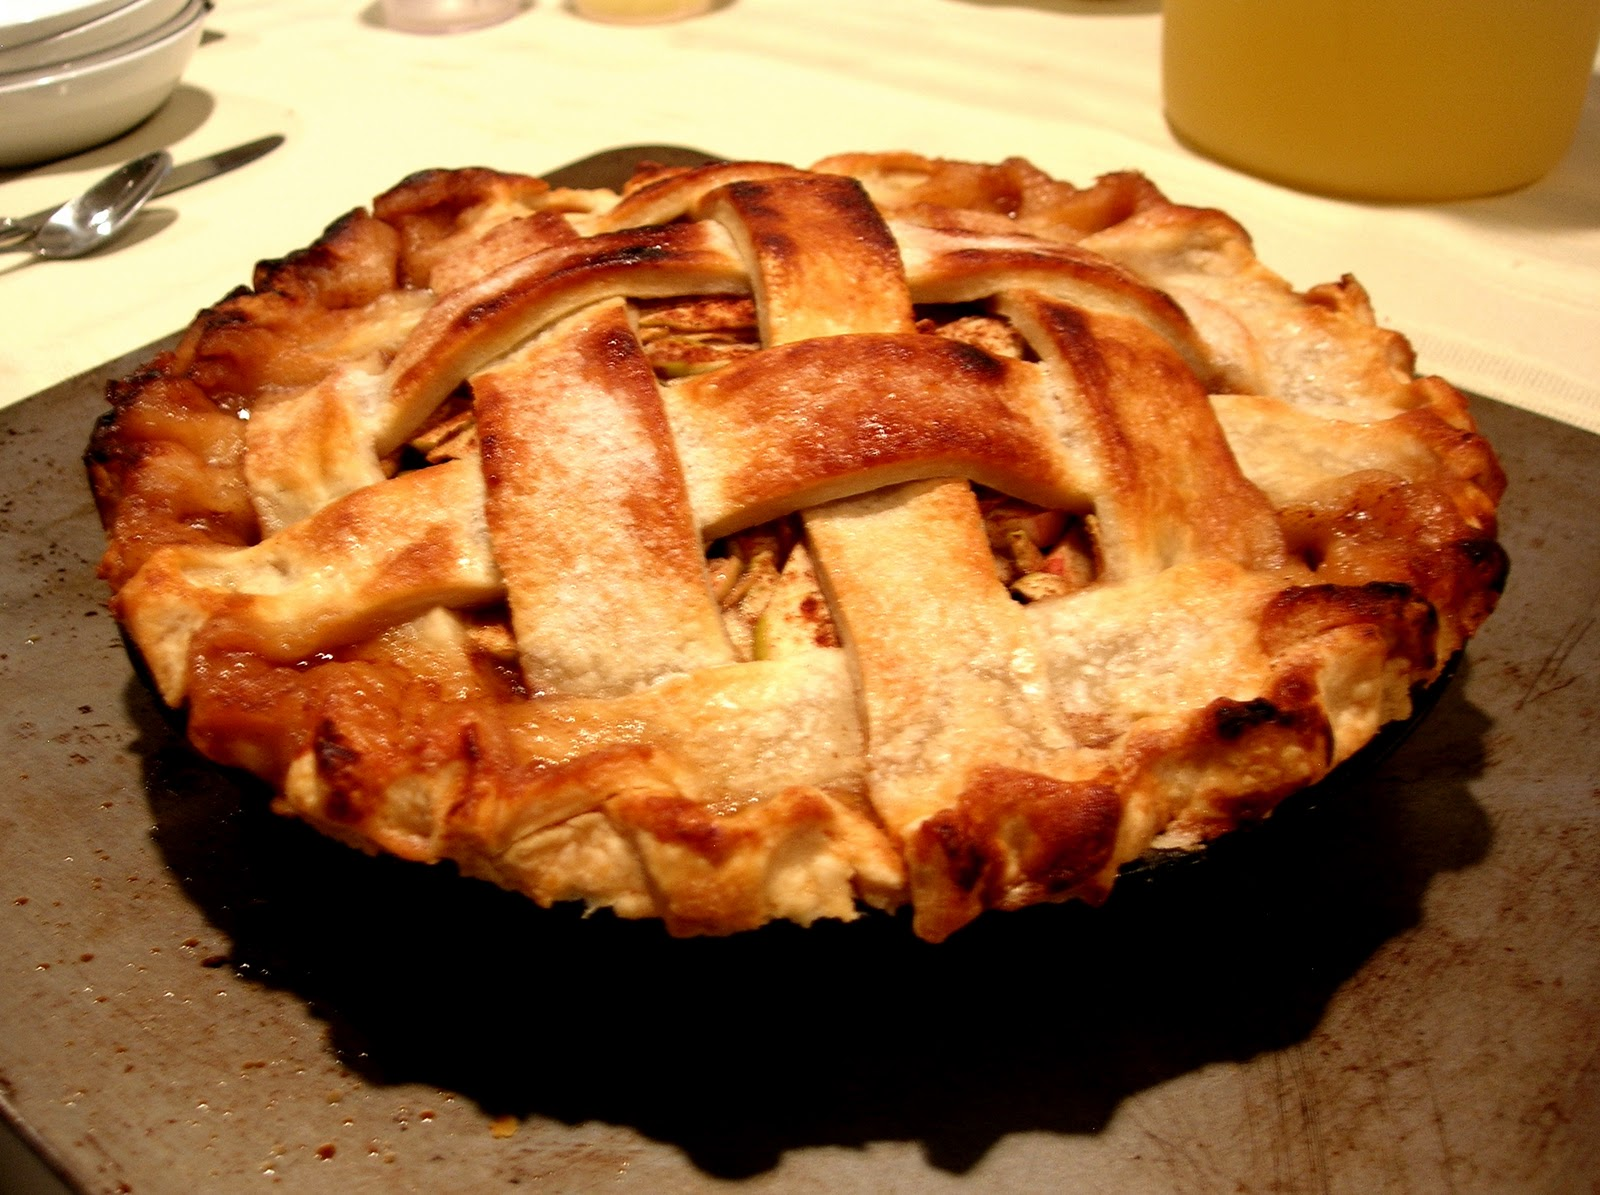 Dishes and Designs: October and Apple Pies